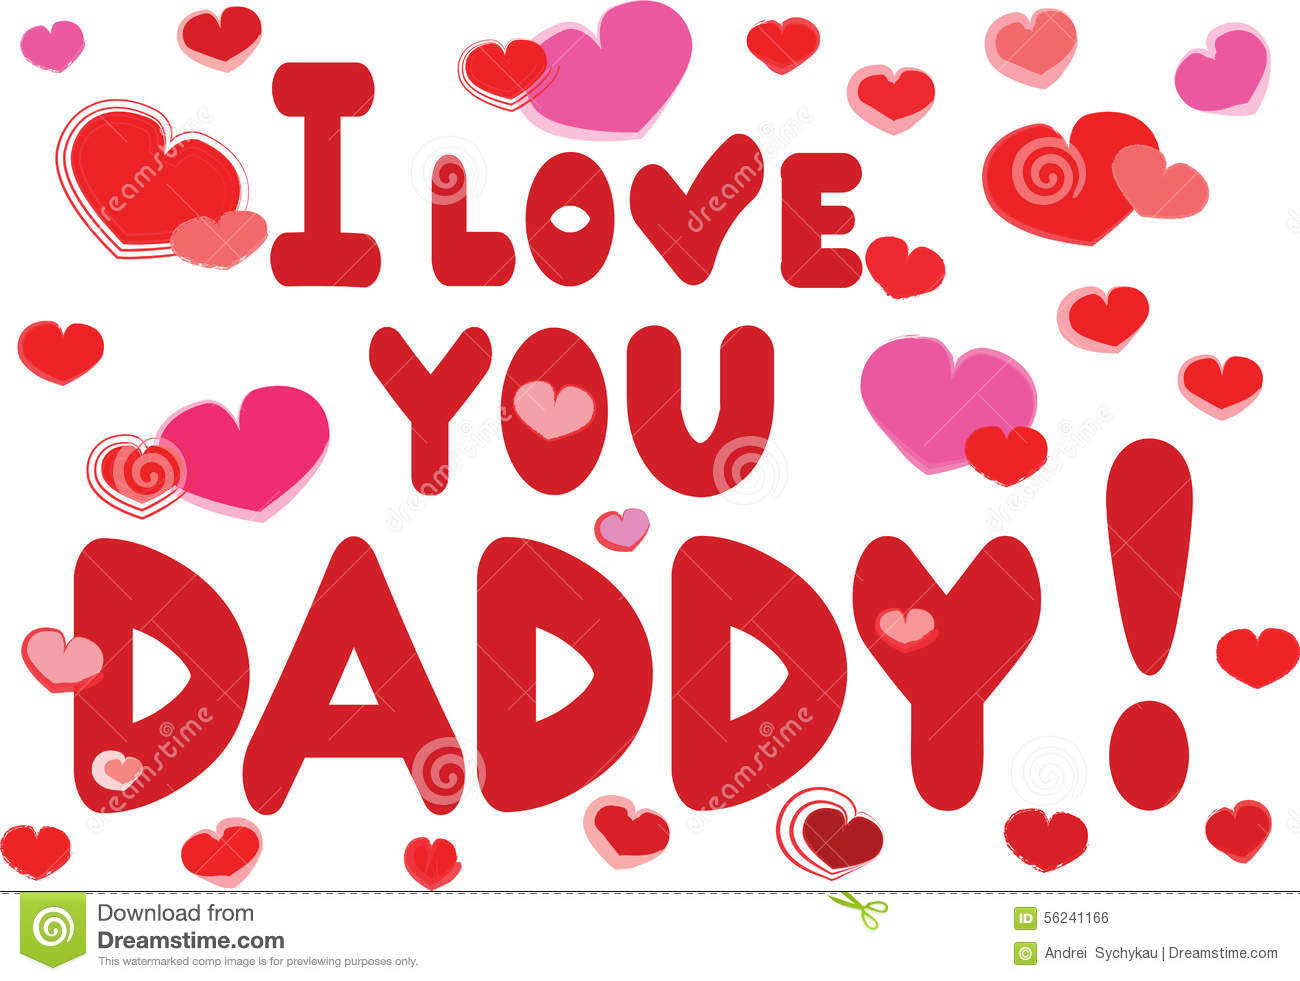 I Love You Daddy Stock Vector Illustration Of Anniversary 56241166